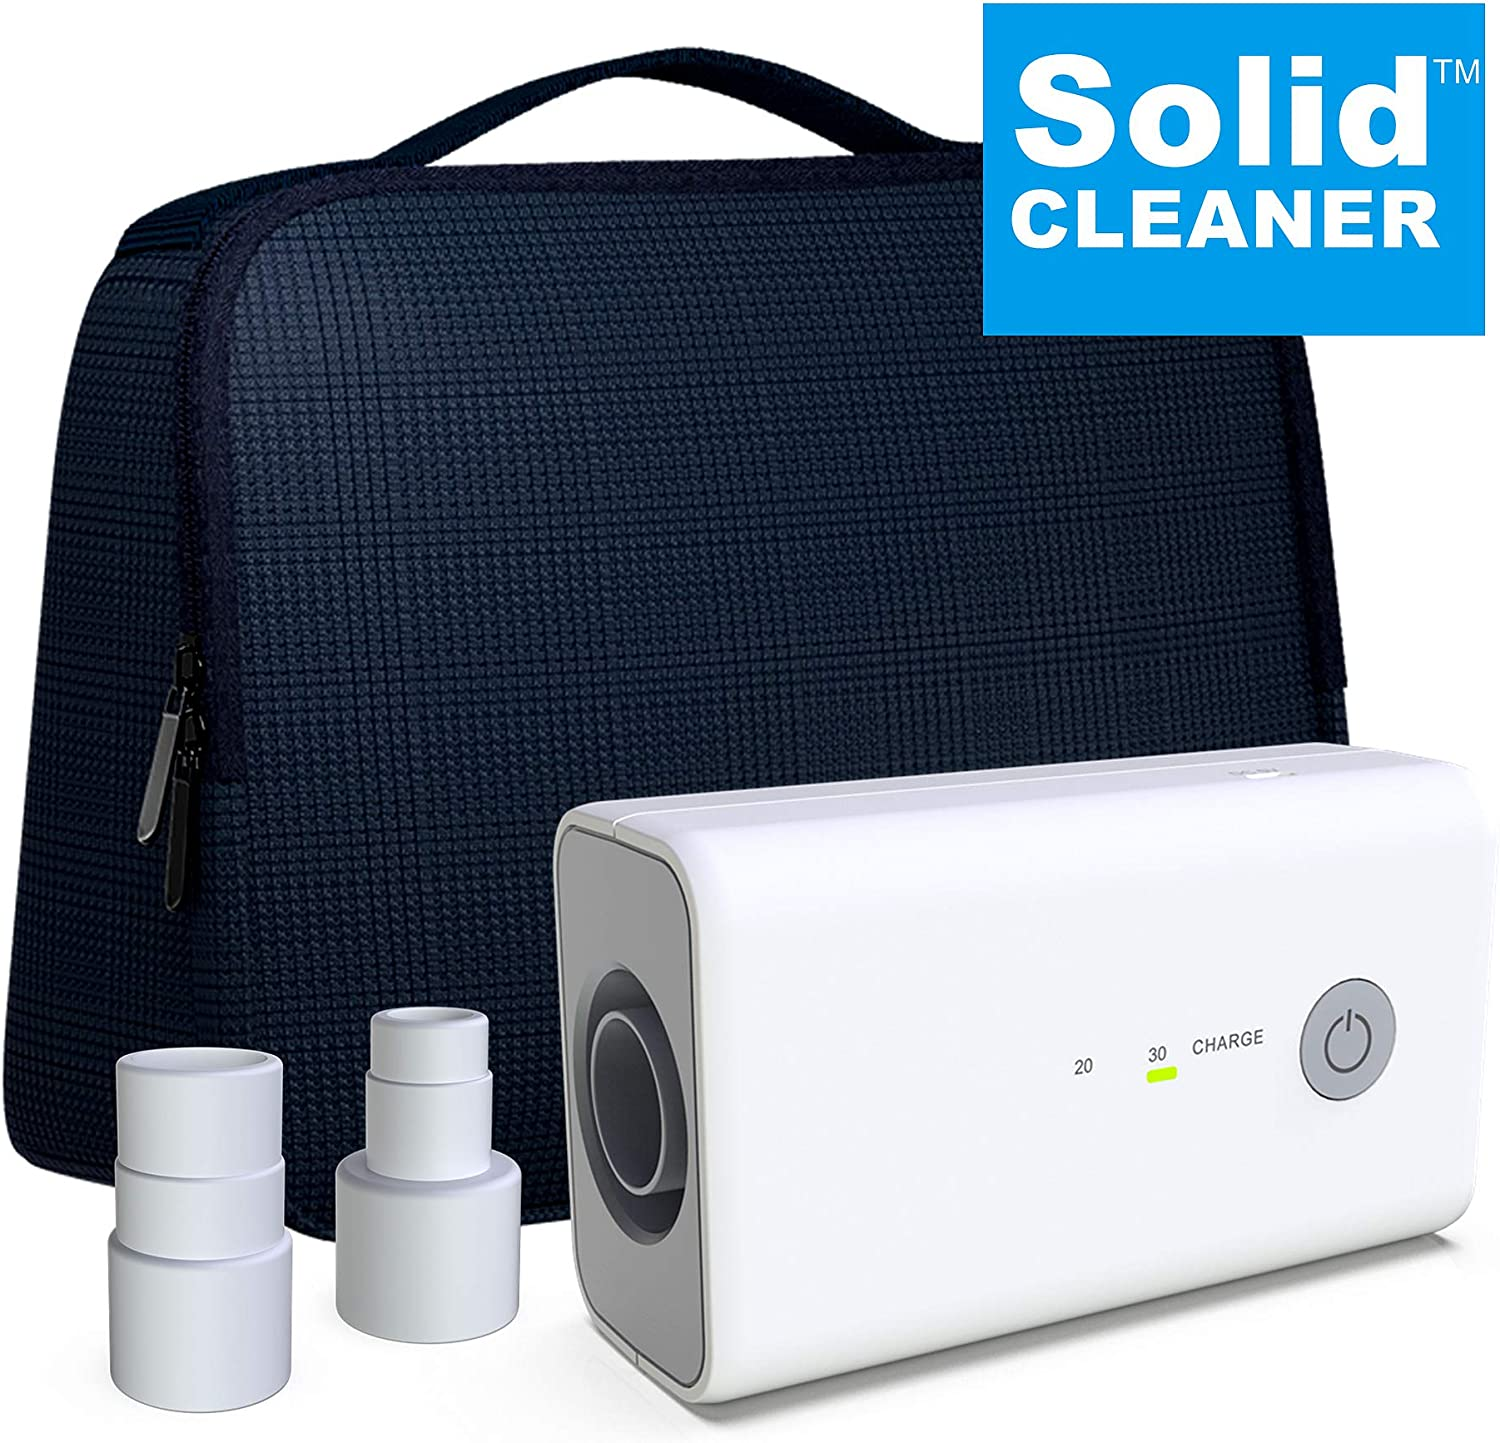 New SolidCLEANER CPAP Cleaner